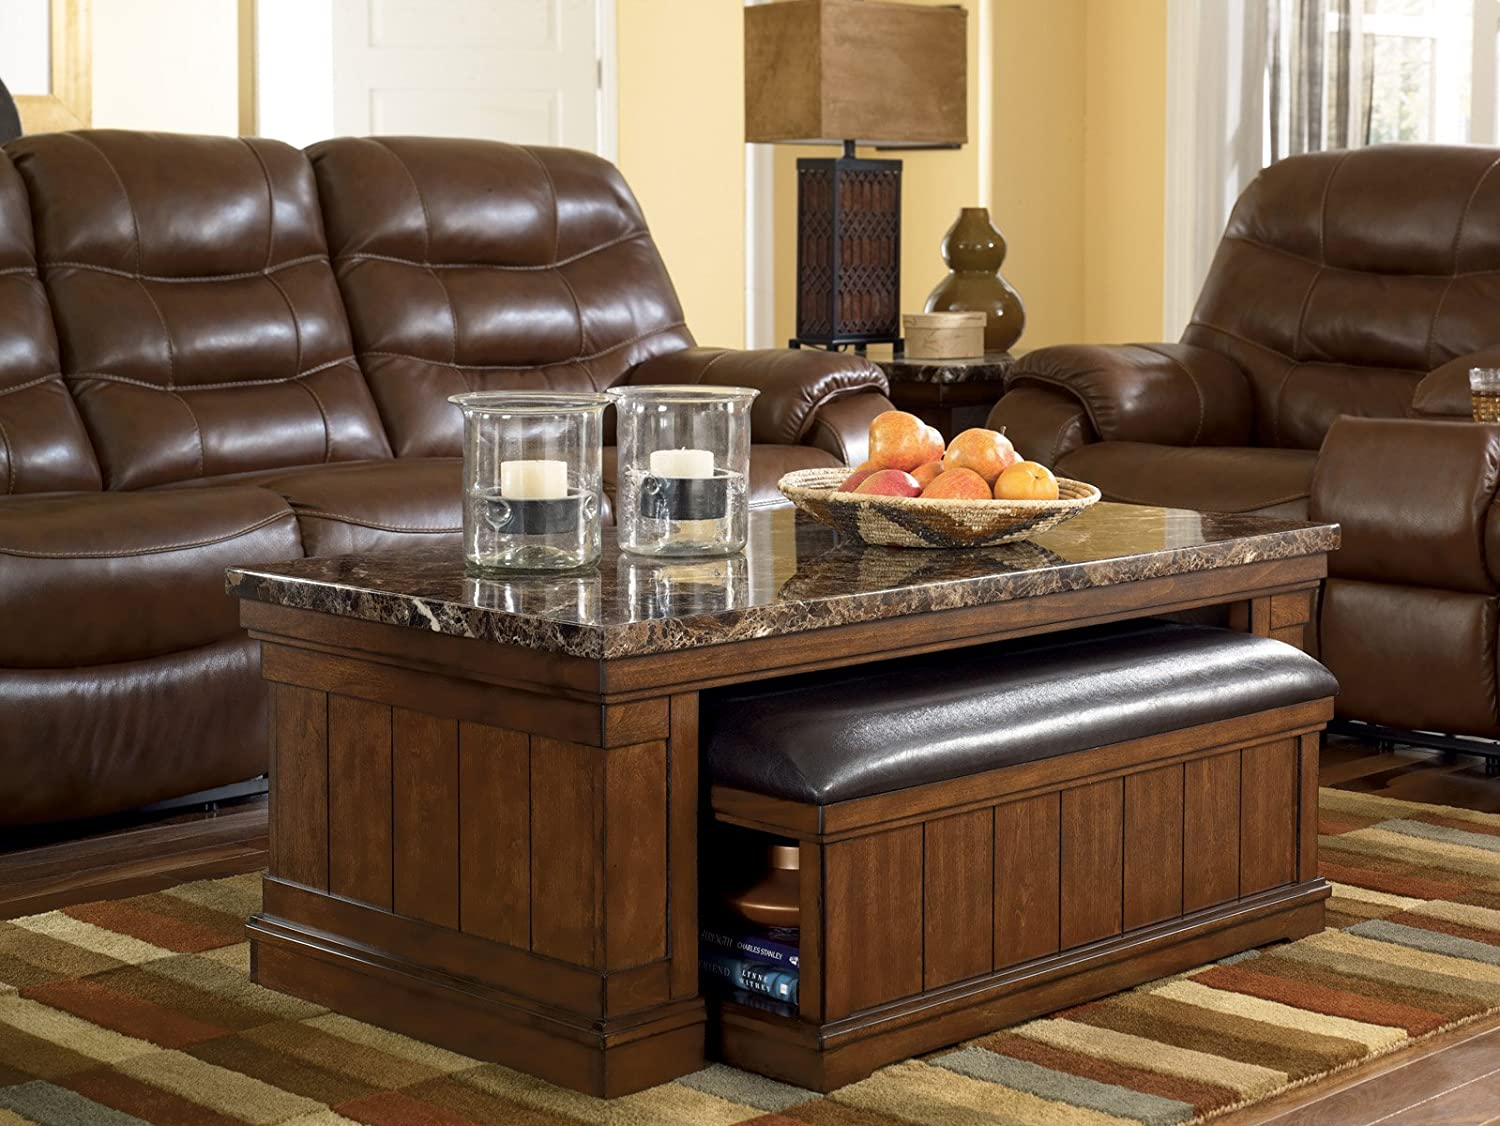 Industrial Fan Coffee Table Amazoncom Signature Design By Ashley T838 1 Merihill Collection